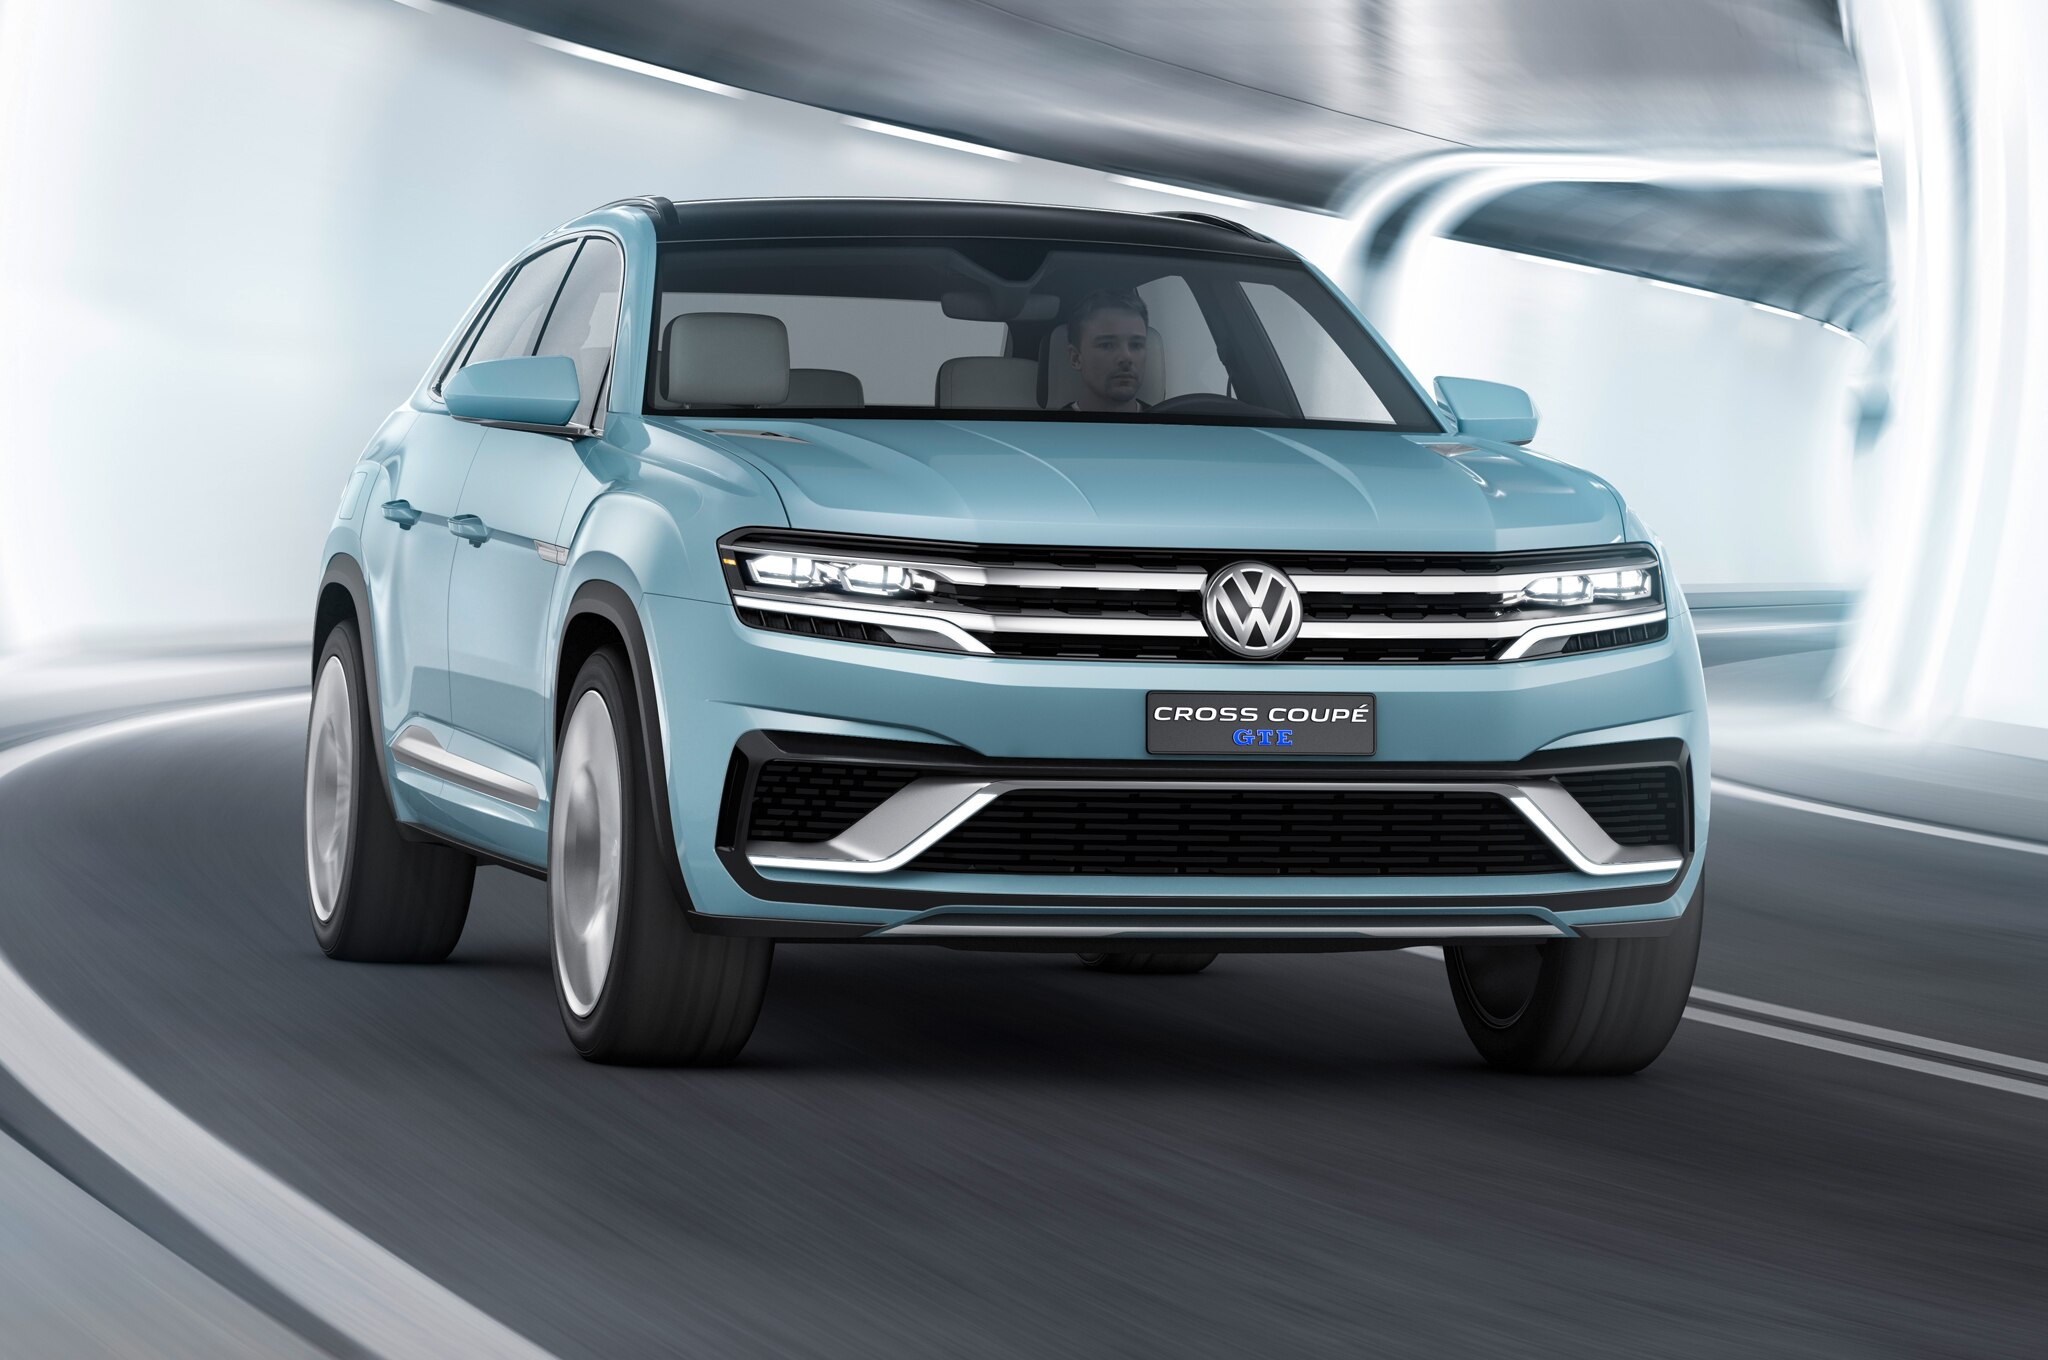 Volkswagen Cross Coupe GTE Concept Front View In Tunnel